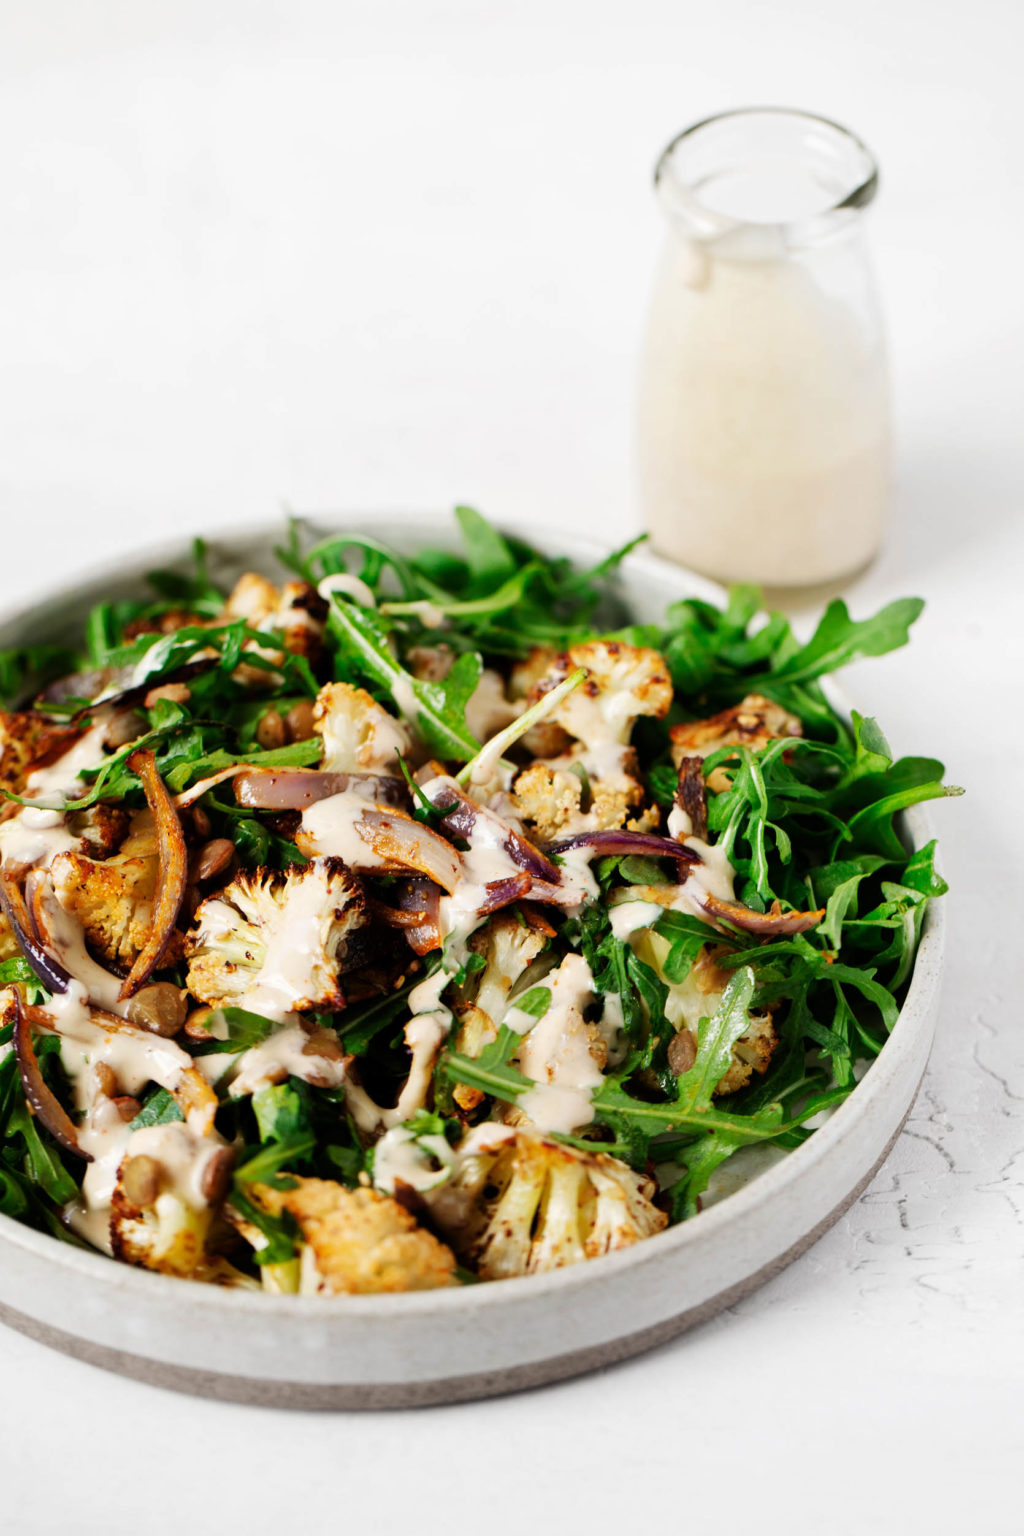 A za'atar roasted cauliflower and green salad has been plated against a white surface. Extra tahini dressing is in a glass container in the background.